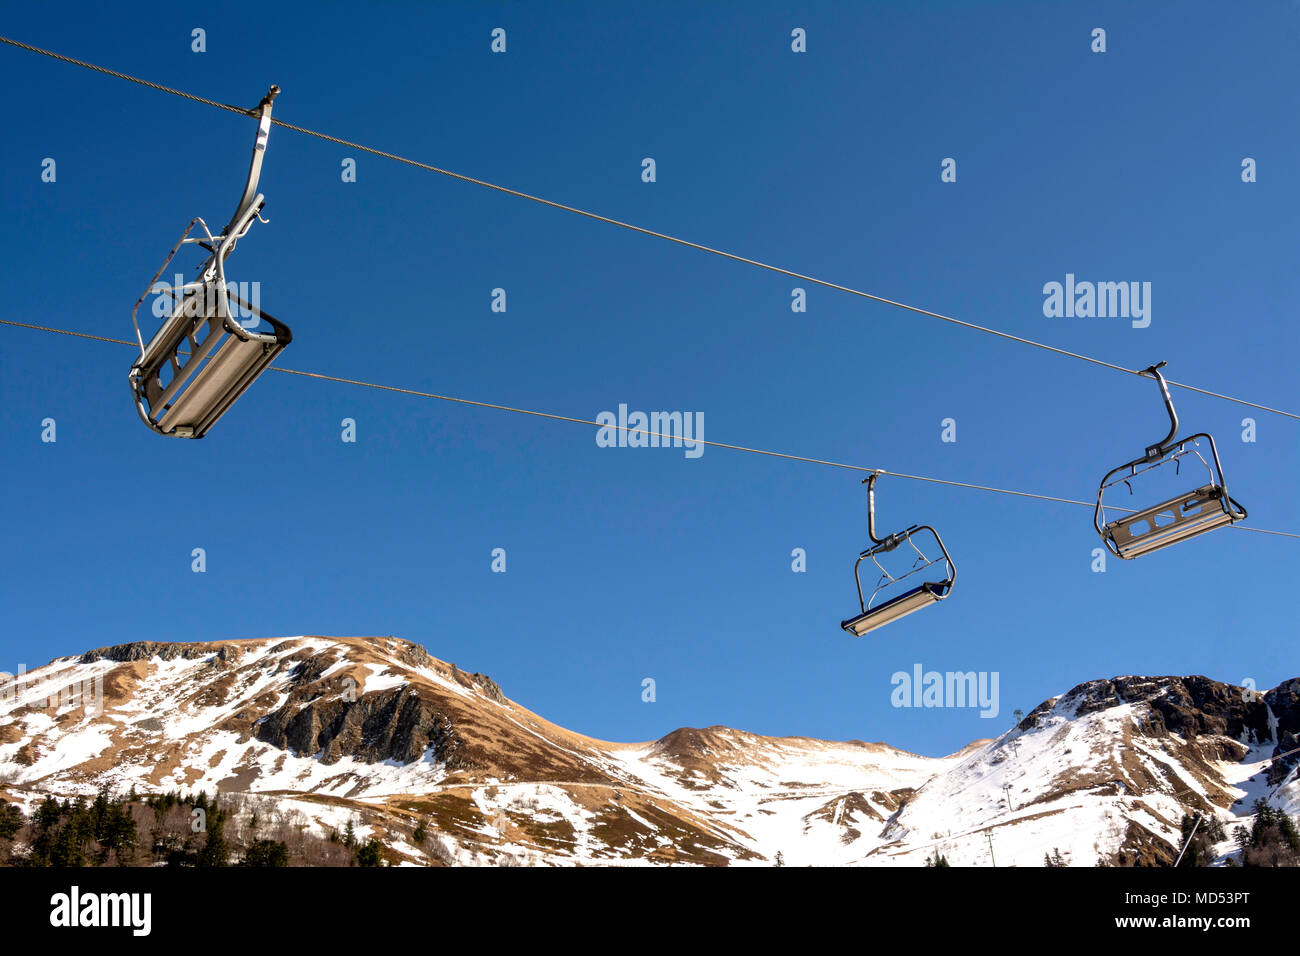 Chairlift and lack of snow in a ski resort of Auvergne, Auvergne, France - Stock Image